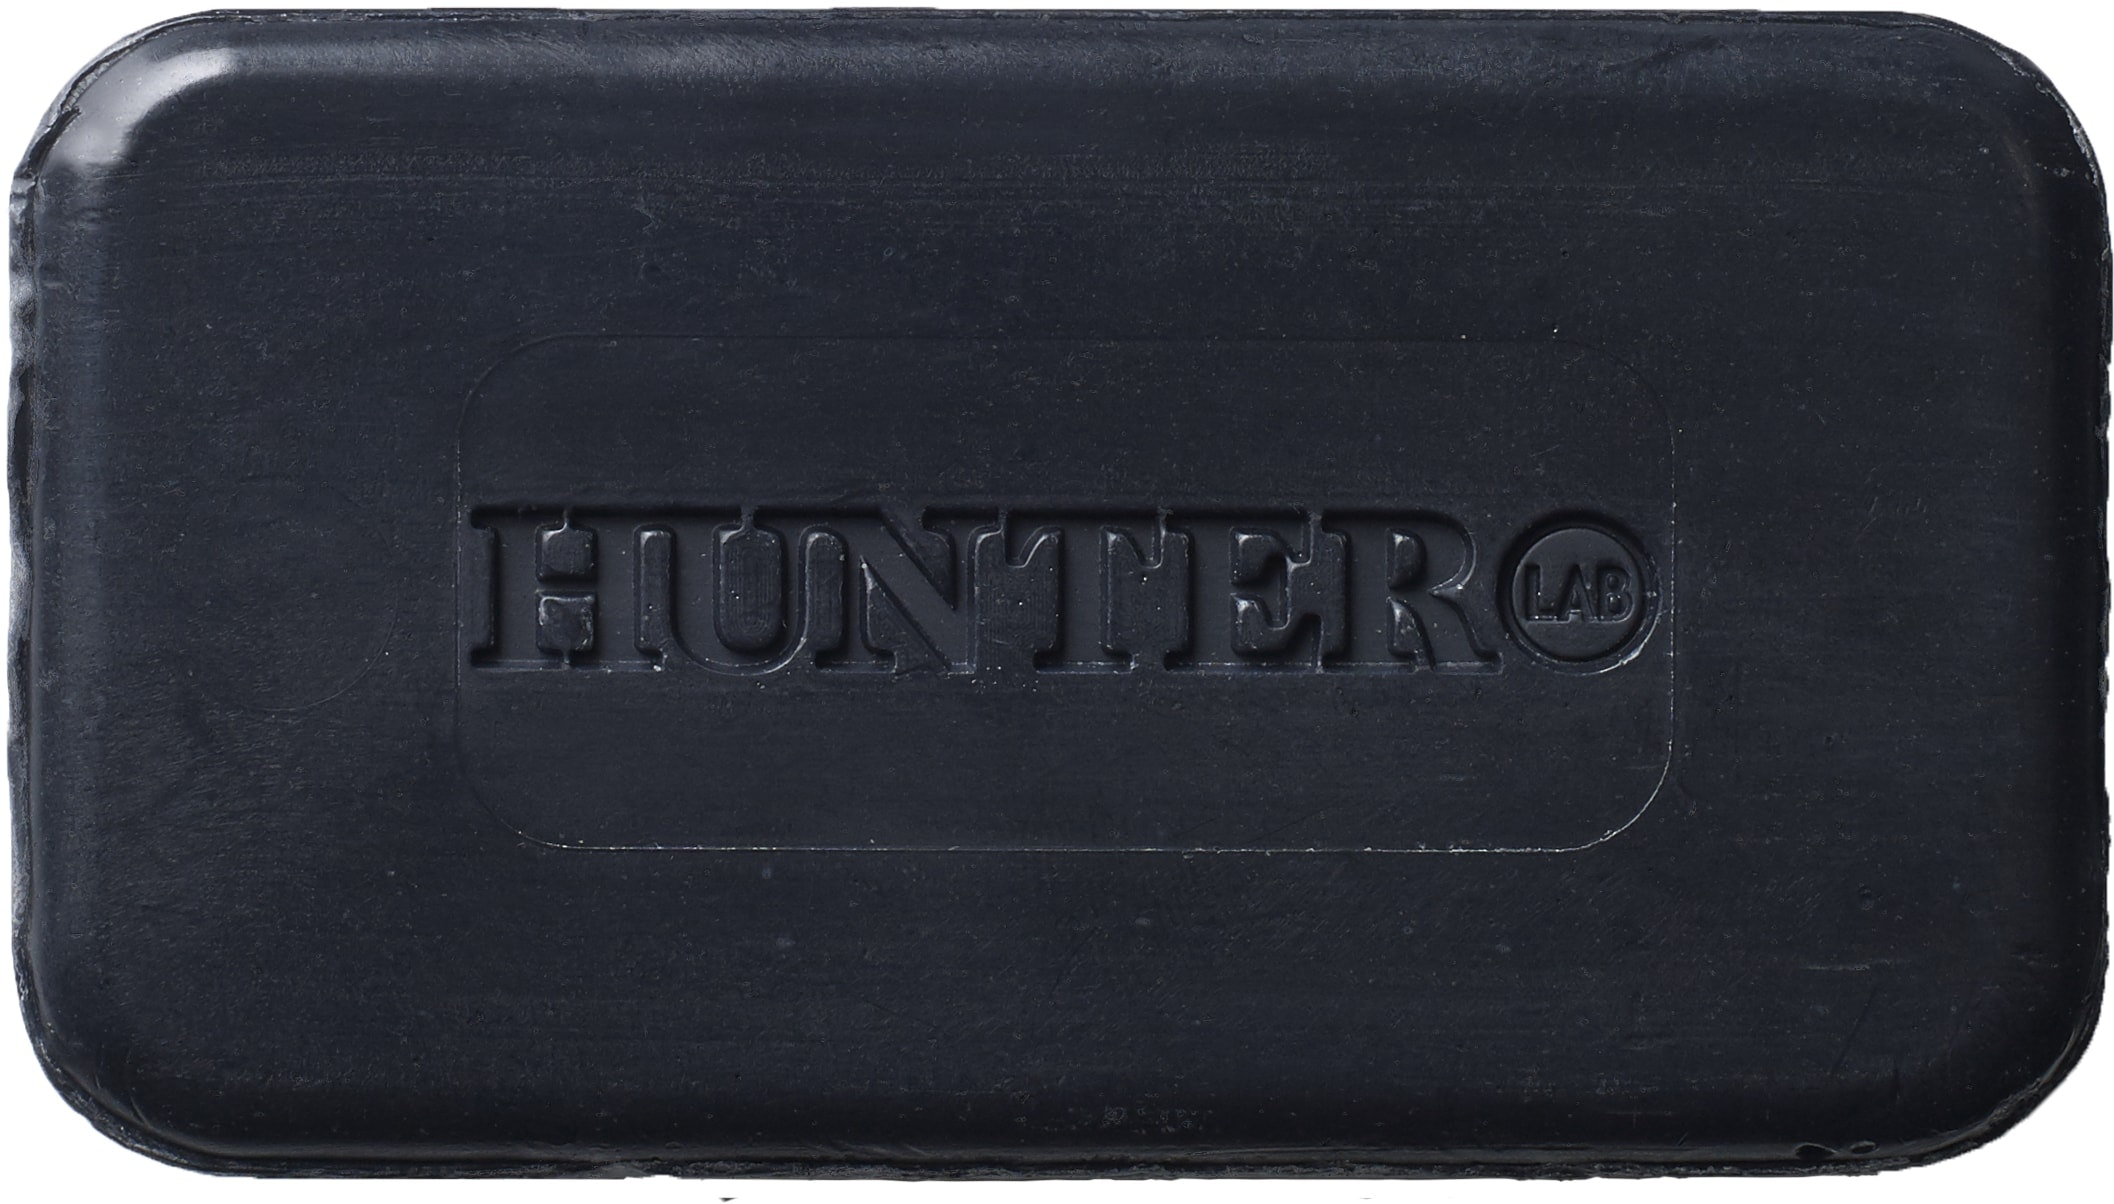 InStitchu Accessories grooming Hunter Lab Exfoliating Hand and Body Bar